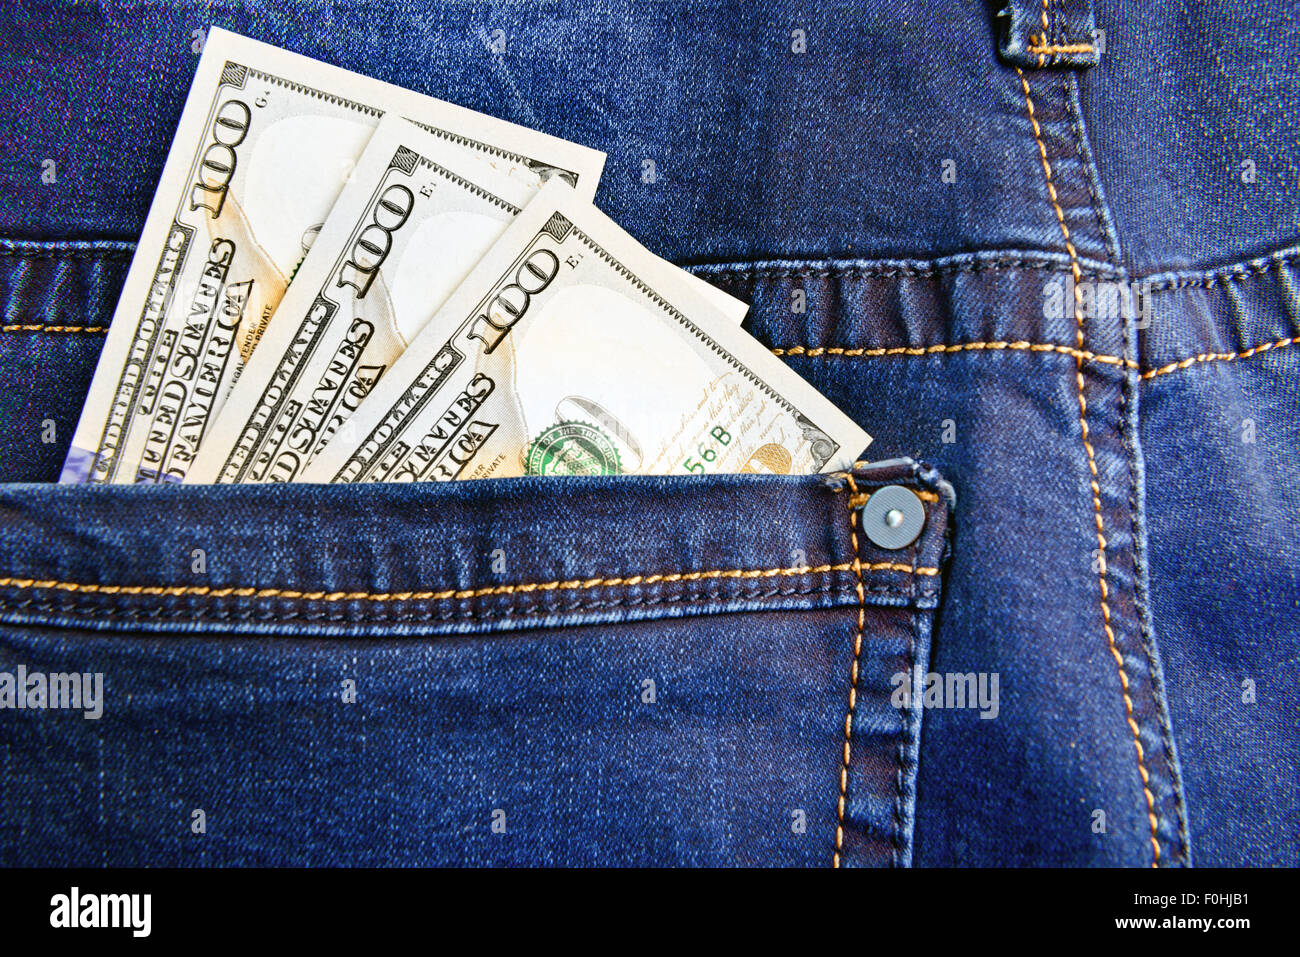 Money in the pocket of jeans - Stock Image